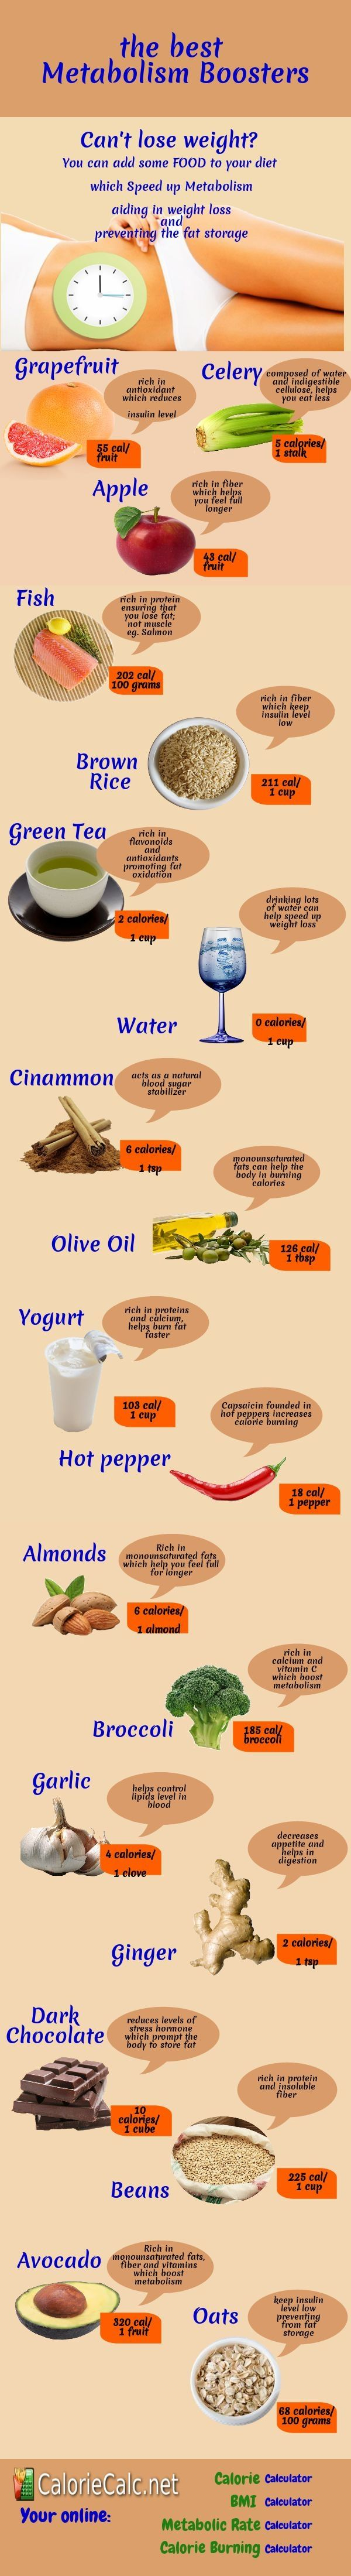 Some food can boost metabolism, prevent the fat storage and help you lose or maintain weight.: Diet, Metabolism Boosters, Weight Loss, Increase Metabolism, Metabolism Boosting Foods, Weightloss, Healthy Food, Weights Loss, Metabolism Infographics by Muna......